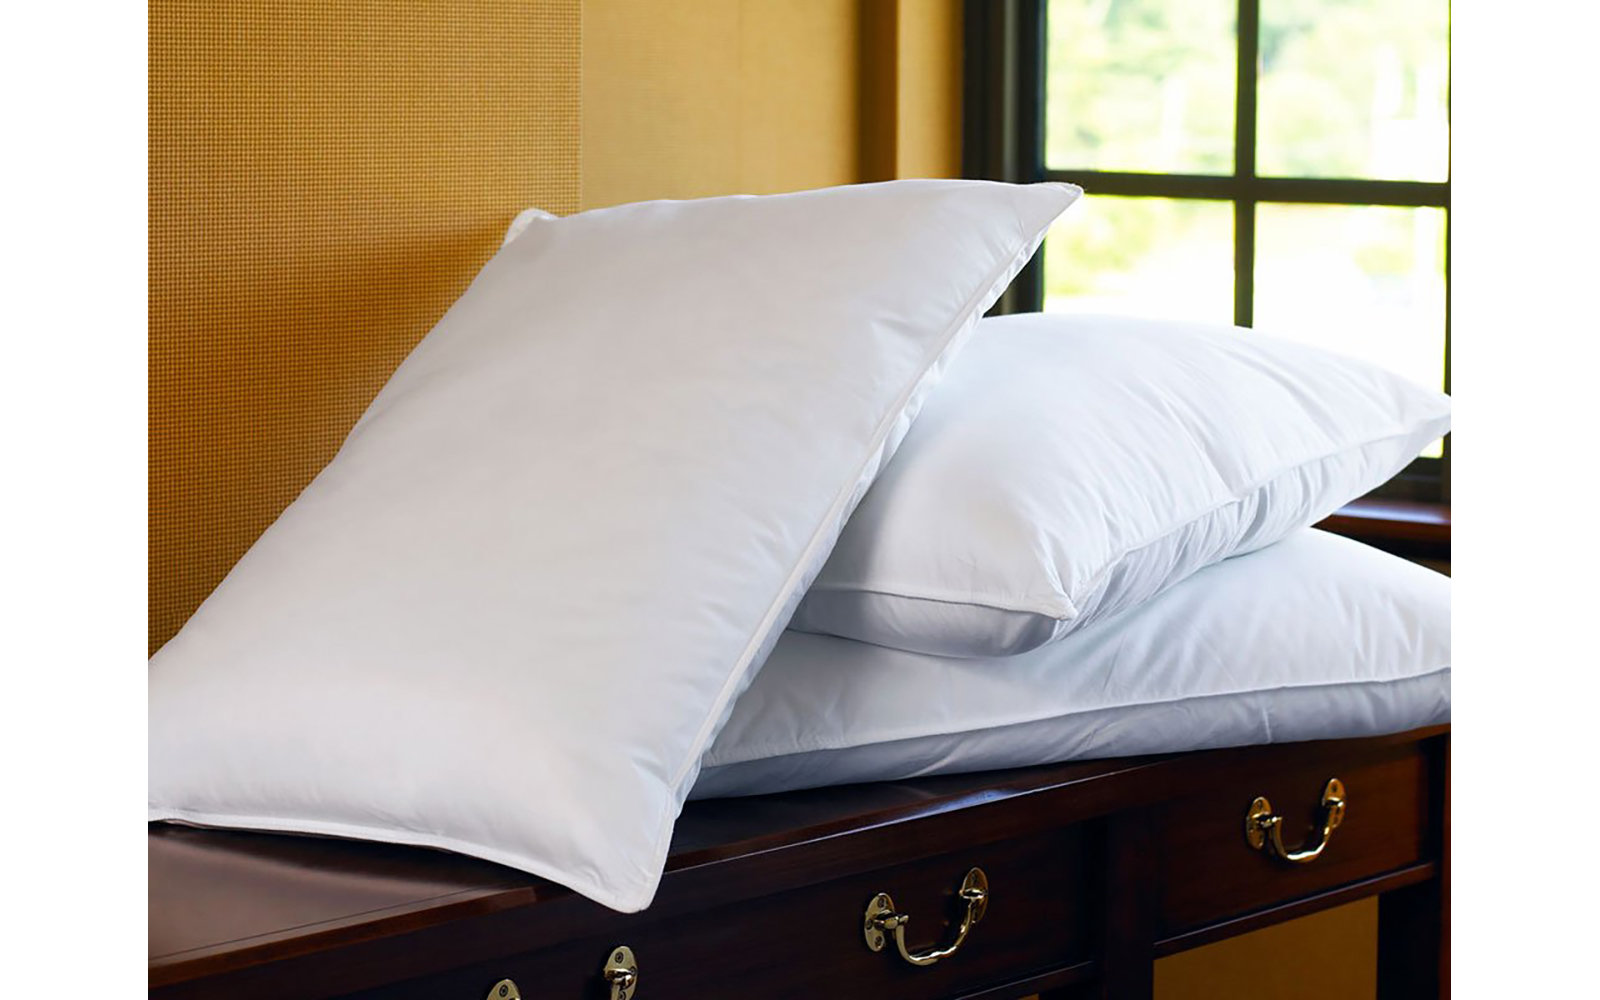 Sheraton Hotel Pillowcases and Pillows